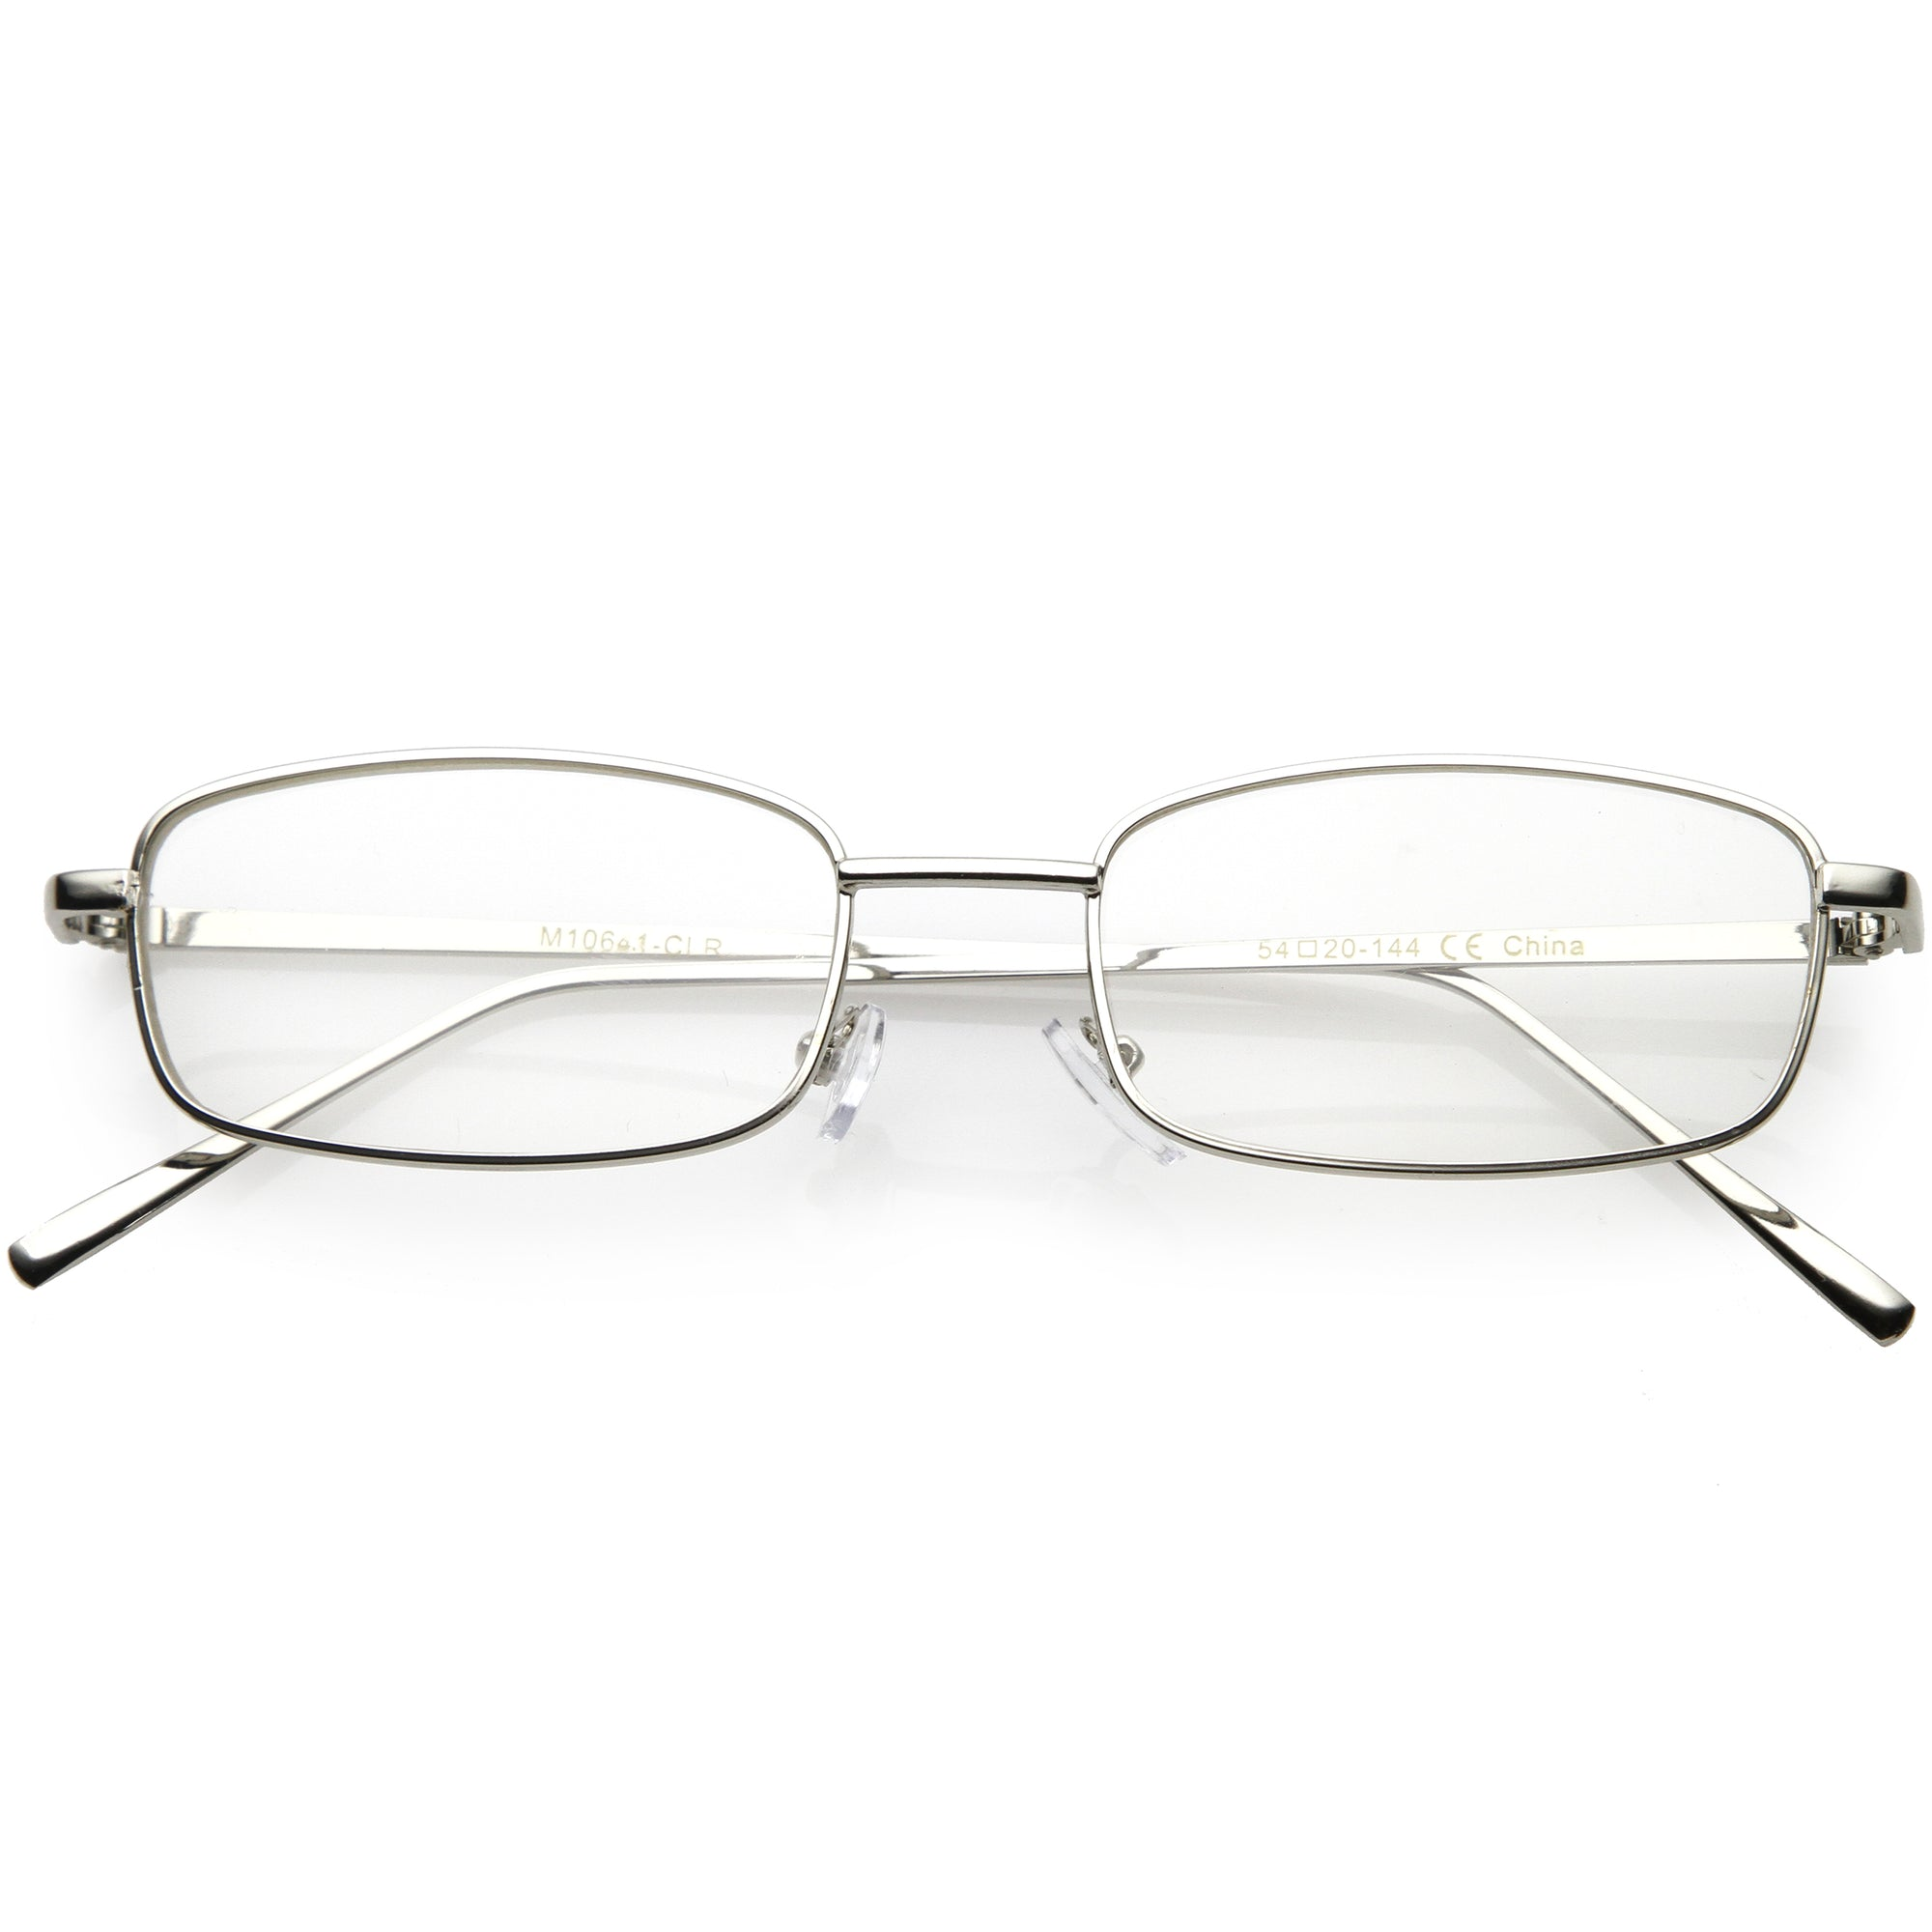 Classic Vintage Inspired Rectangle Flat Clear Lens Glasses C726